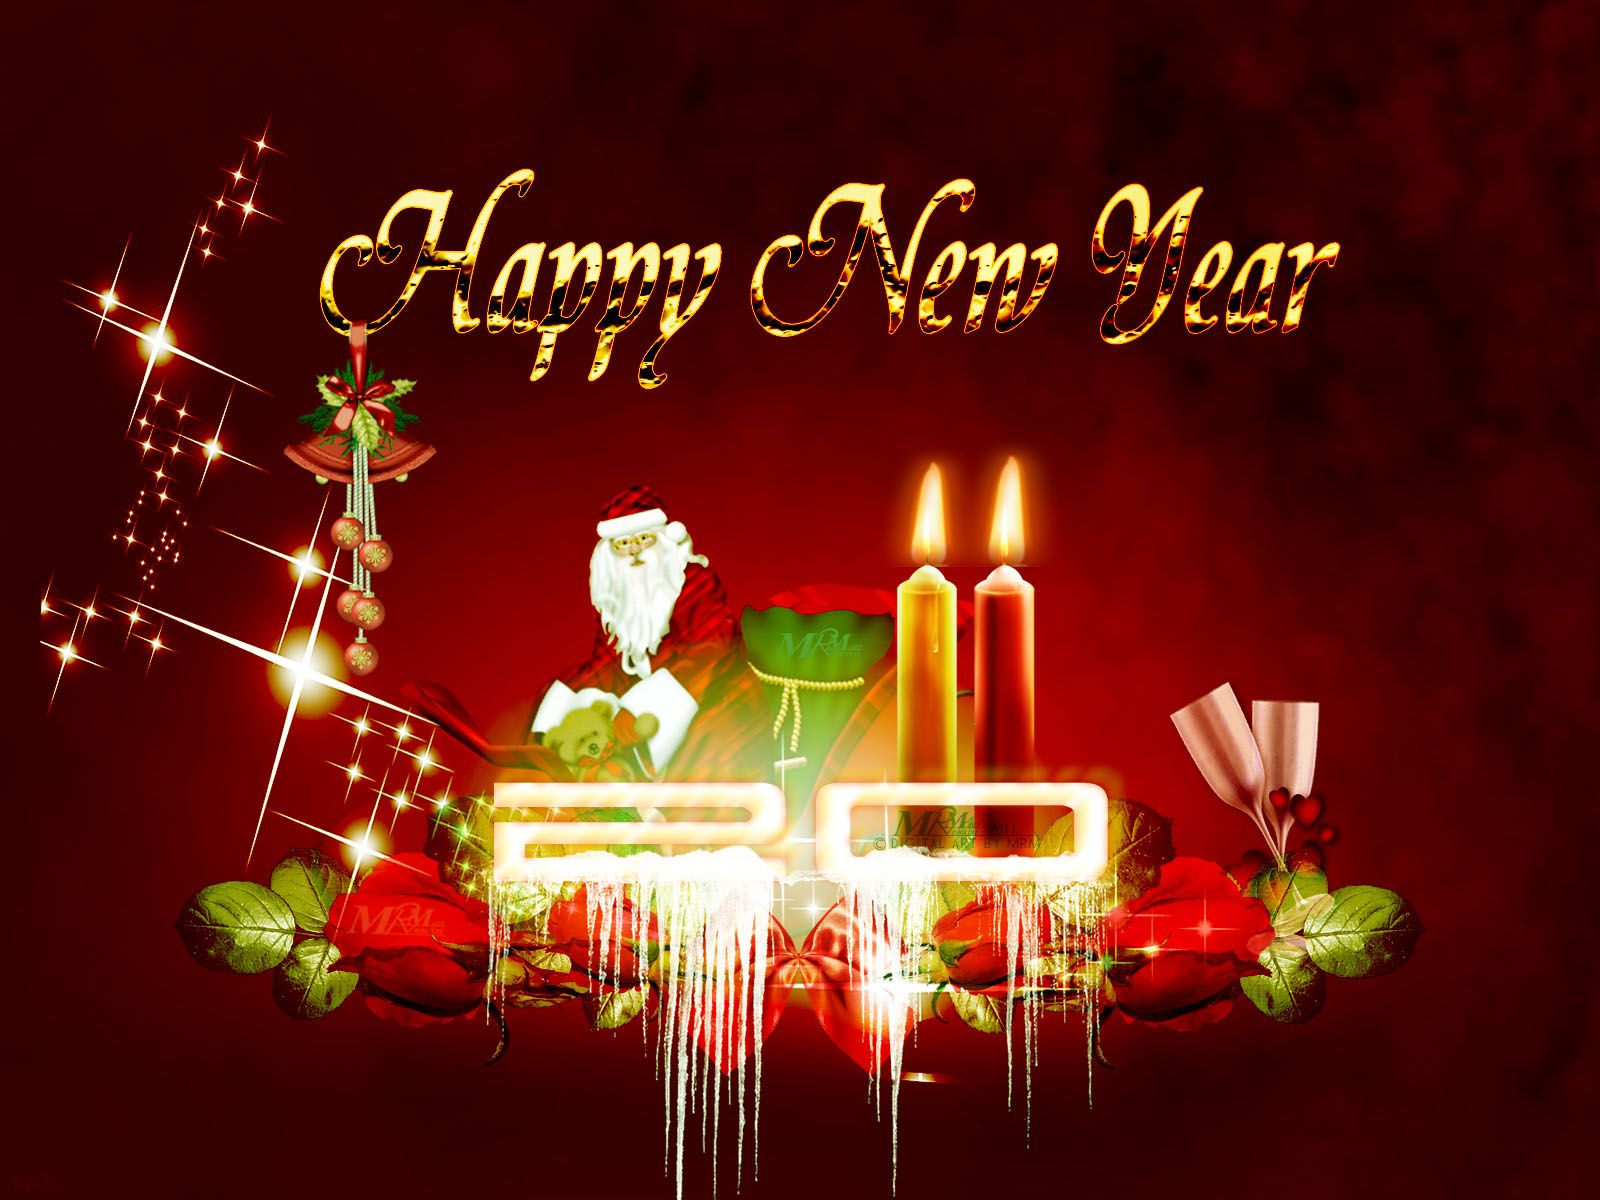 Happy new year greeting card merry christmas and happy new year explore happy diwali diwali wishes and more happy new year greeting card kristyandbryce Gallery